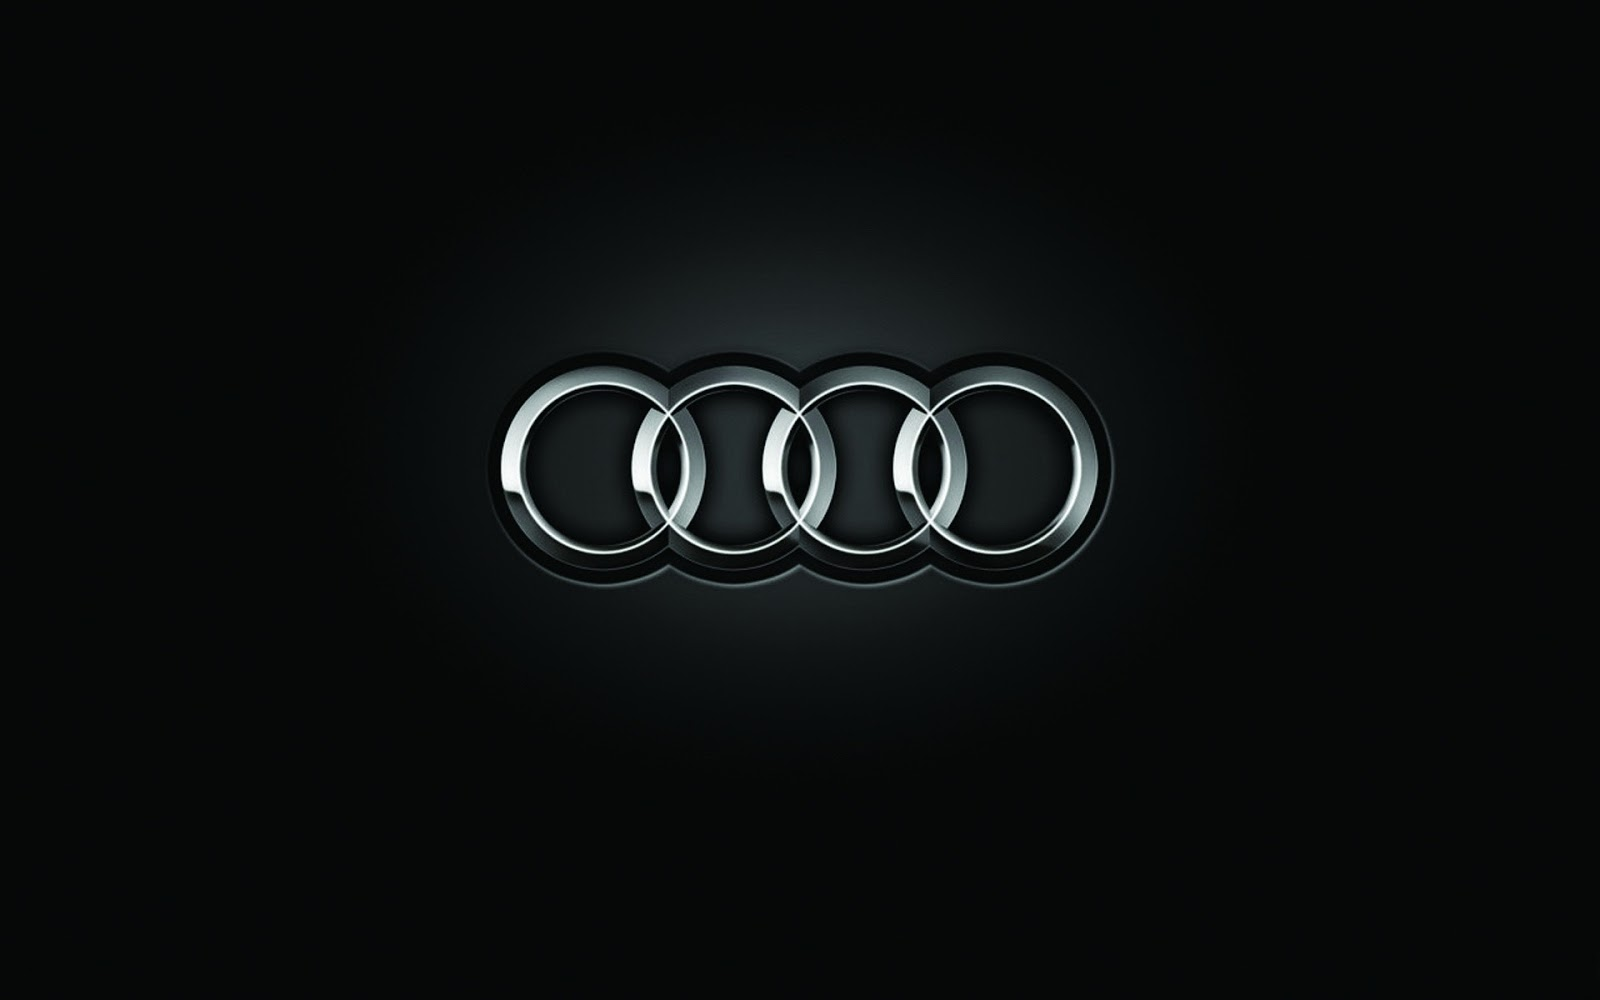 audi logo transparent background. audi emblem logo transparent background